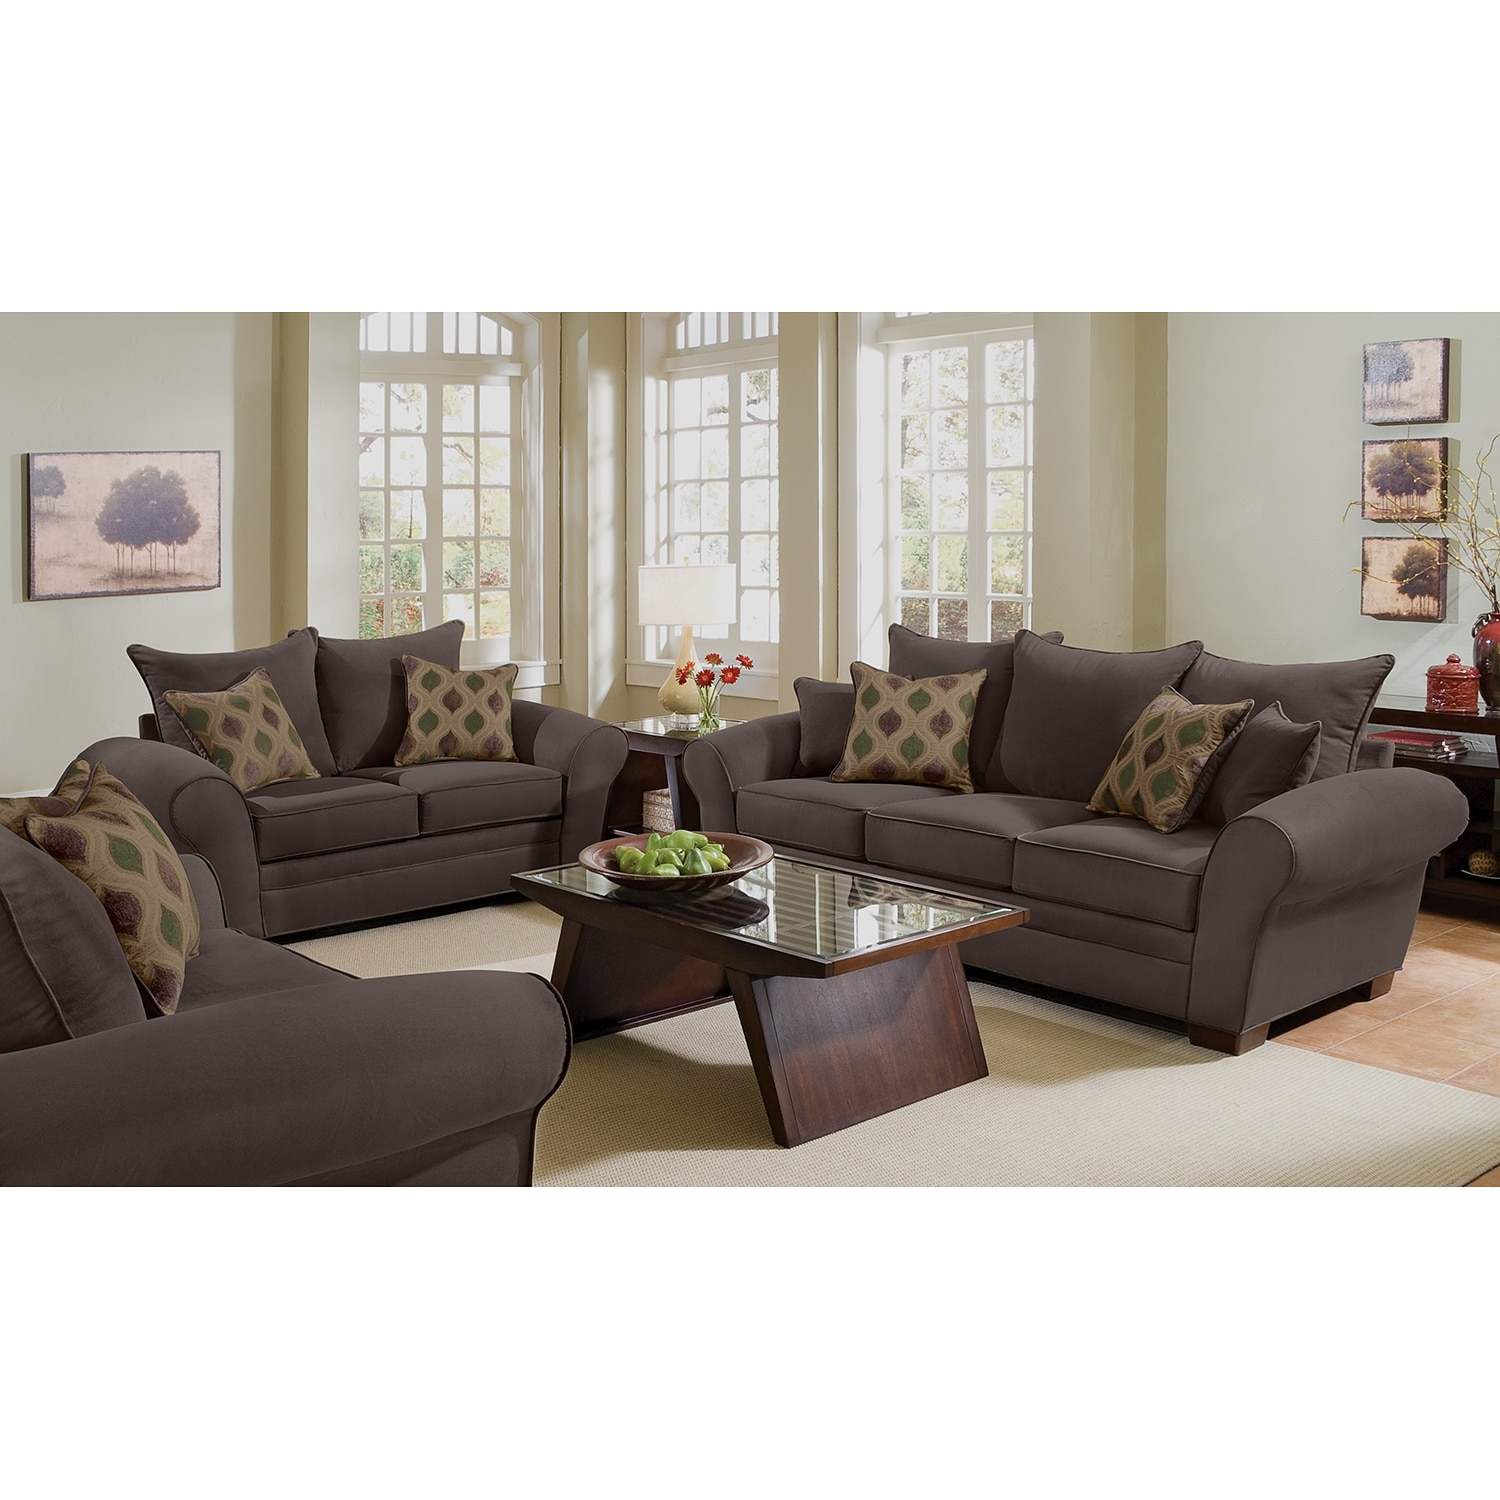 Living room furniture packages american signature furniture for Living room packages